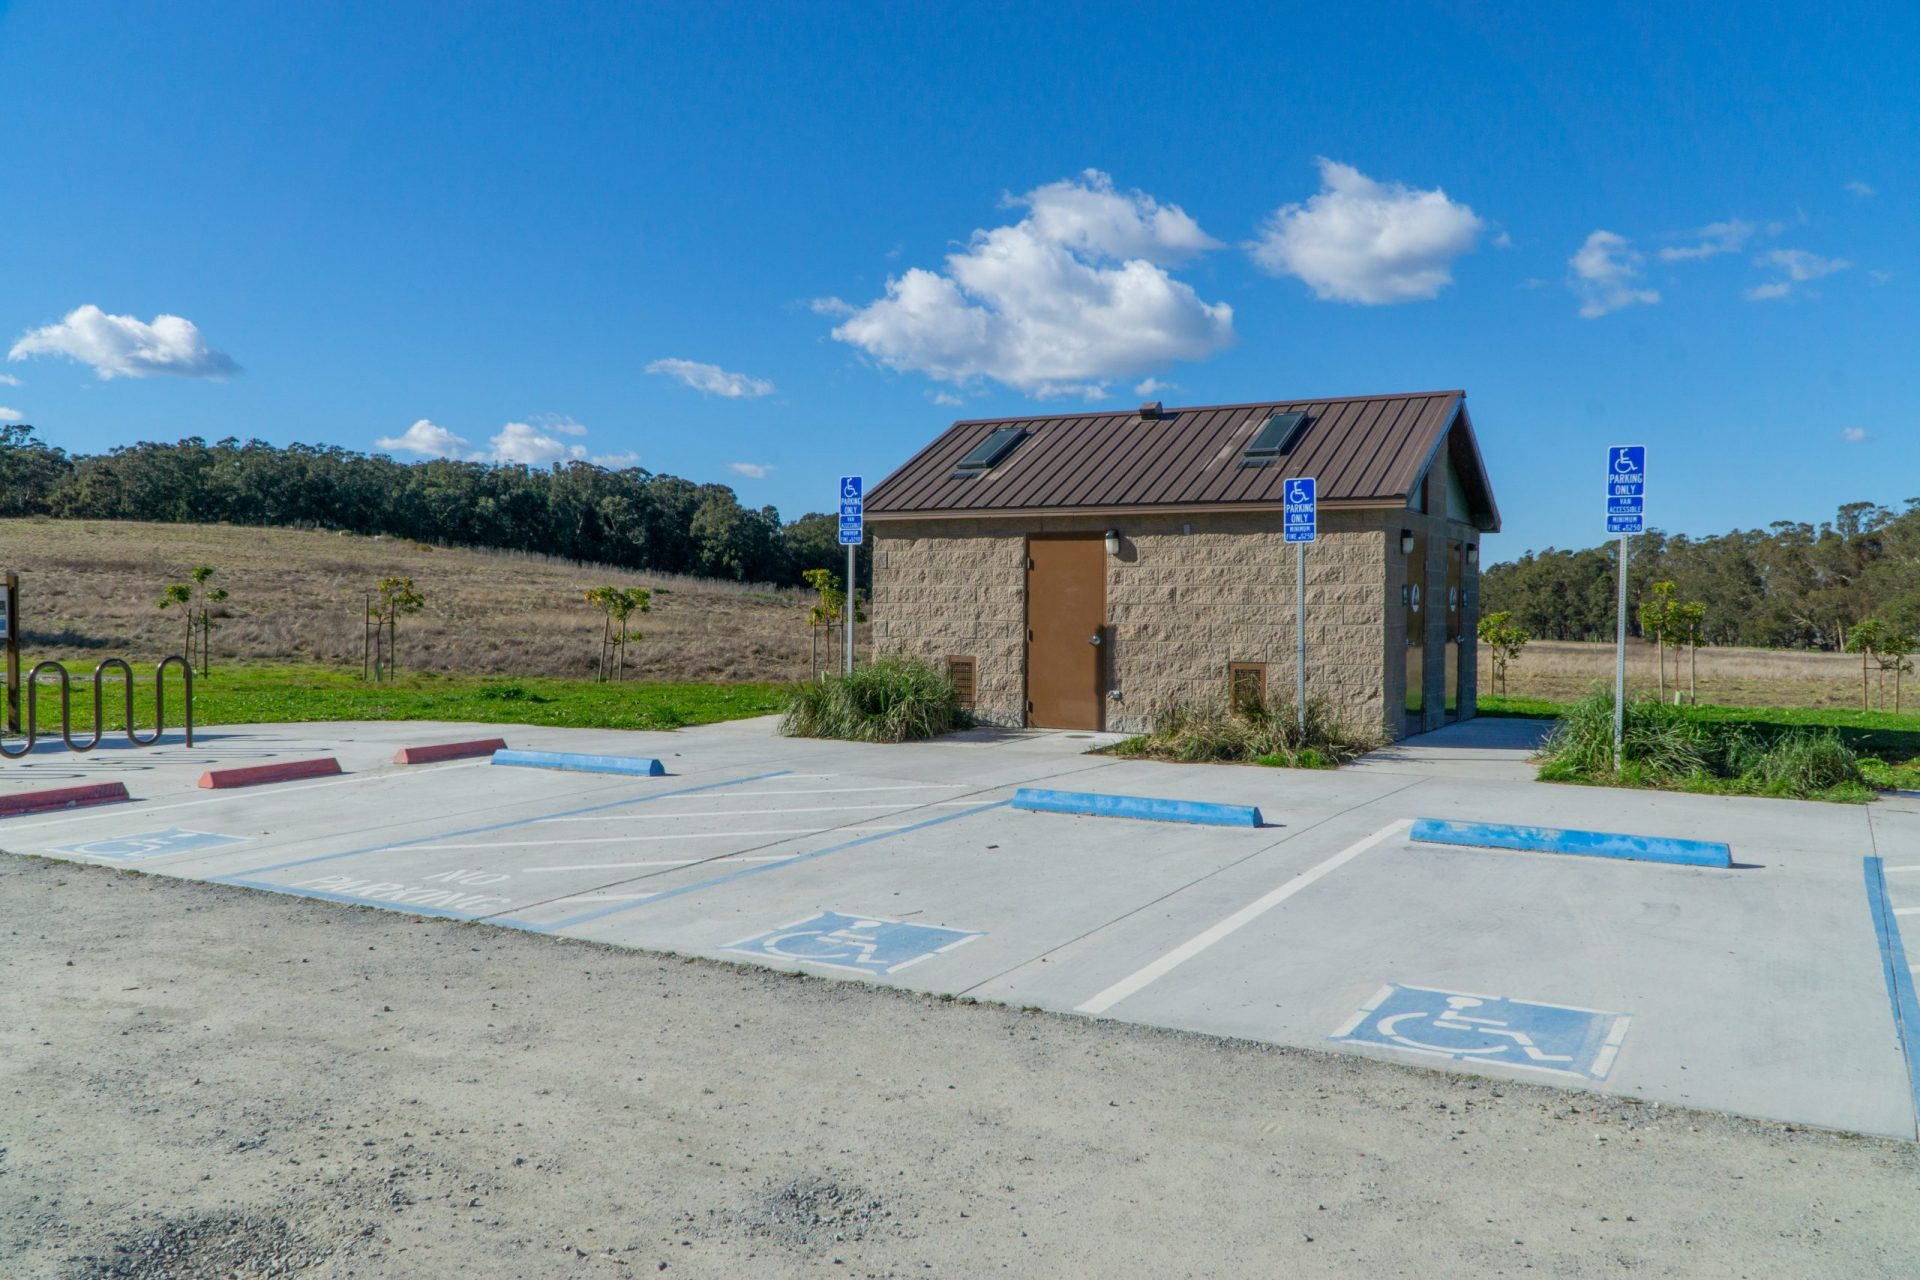 restroom and parking area